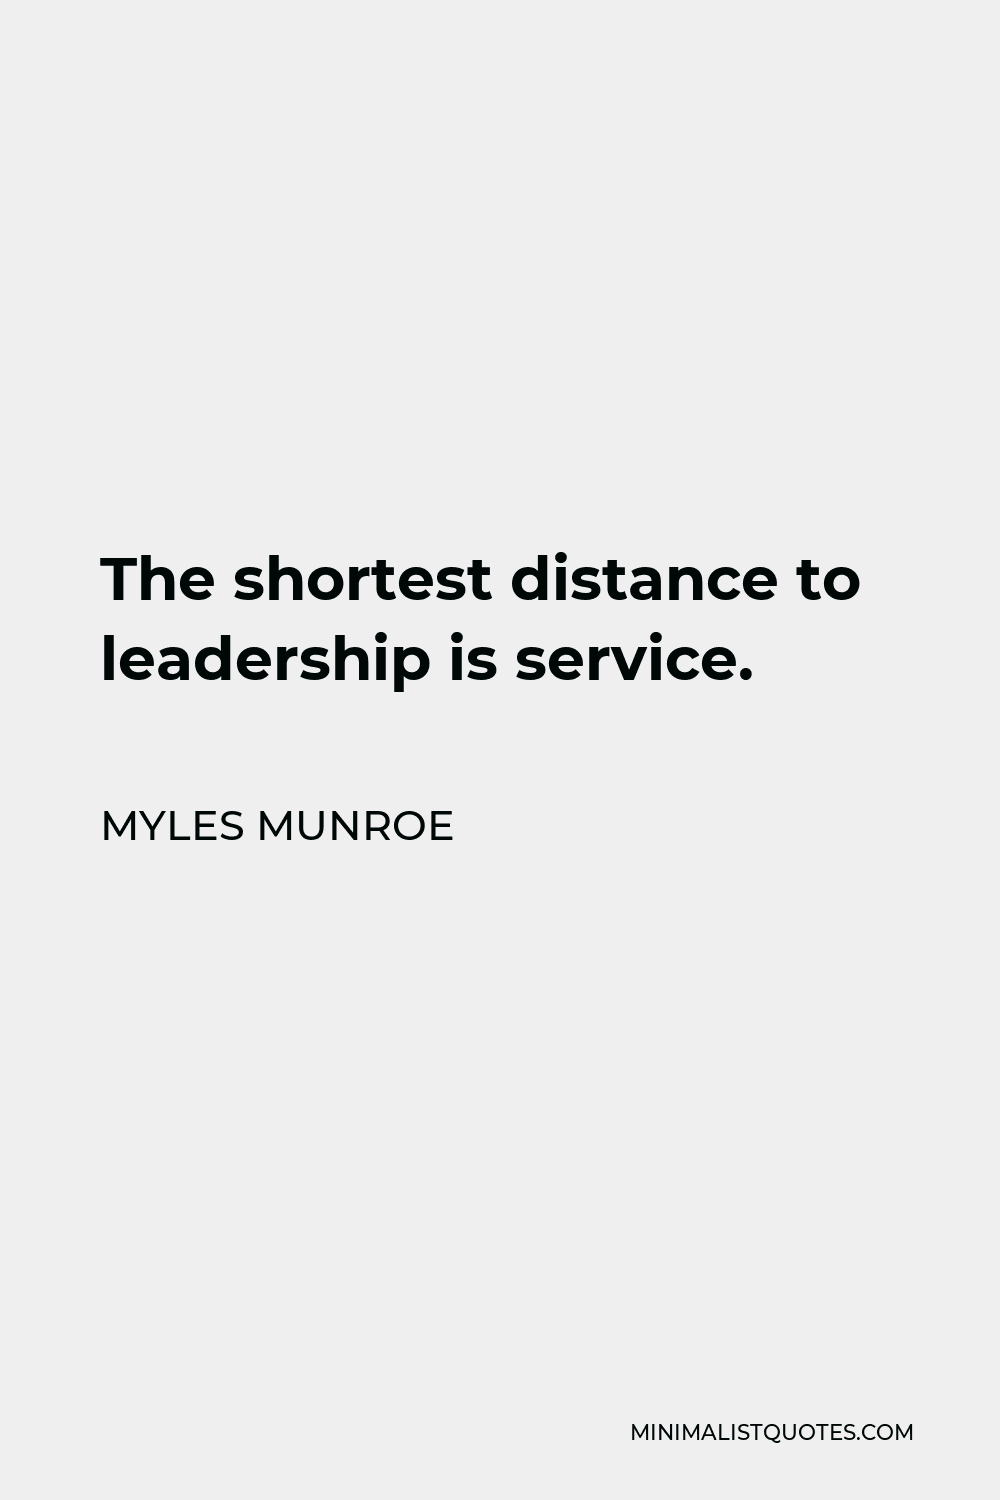 Myles Munroe Quote - The shortest distance to leadership is service.